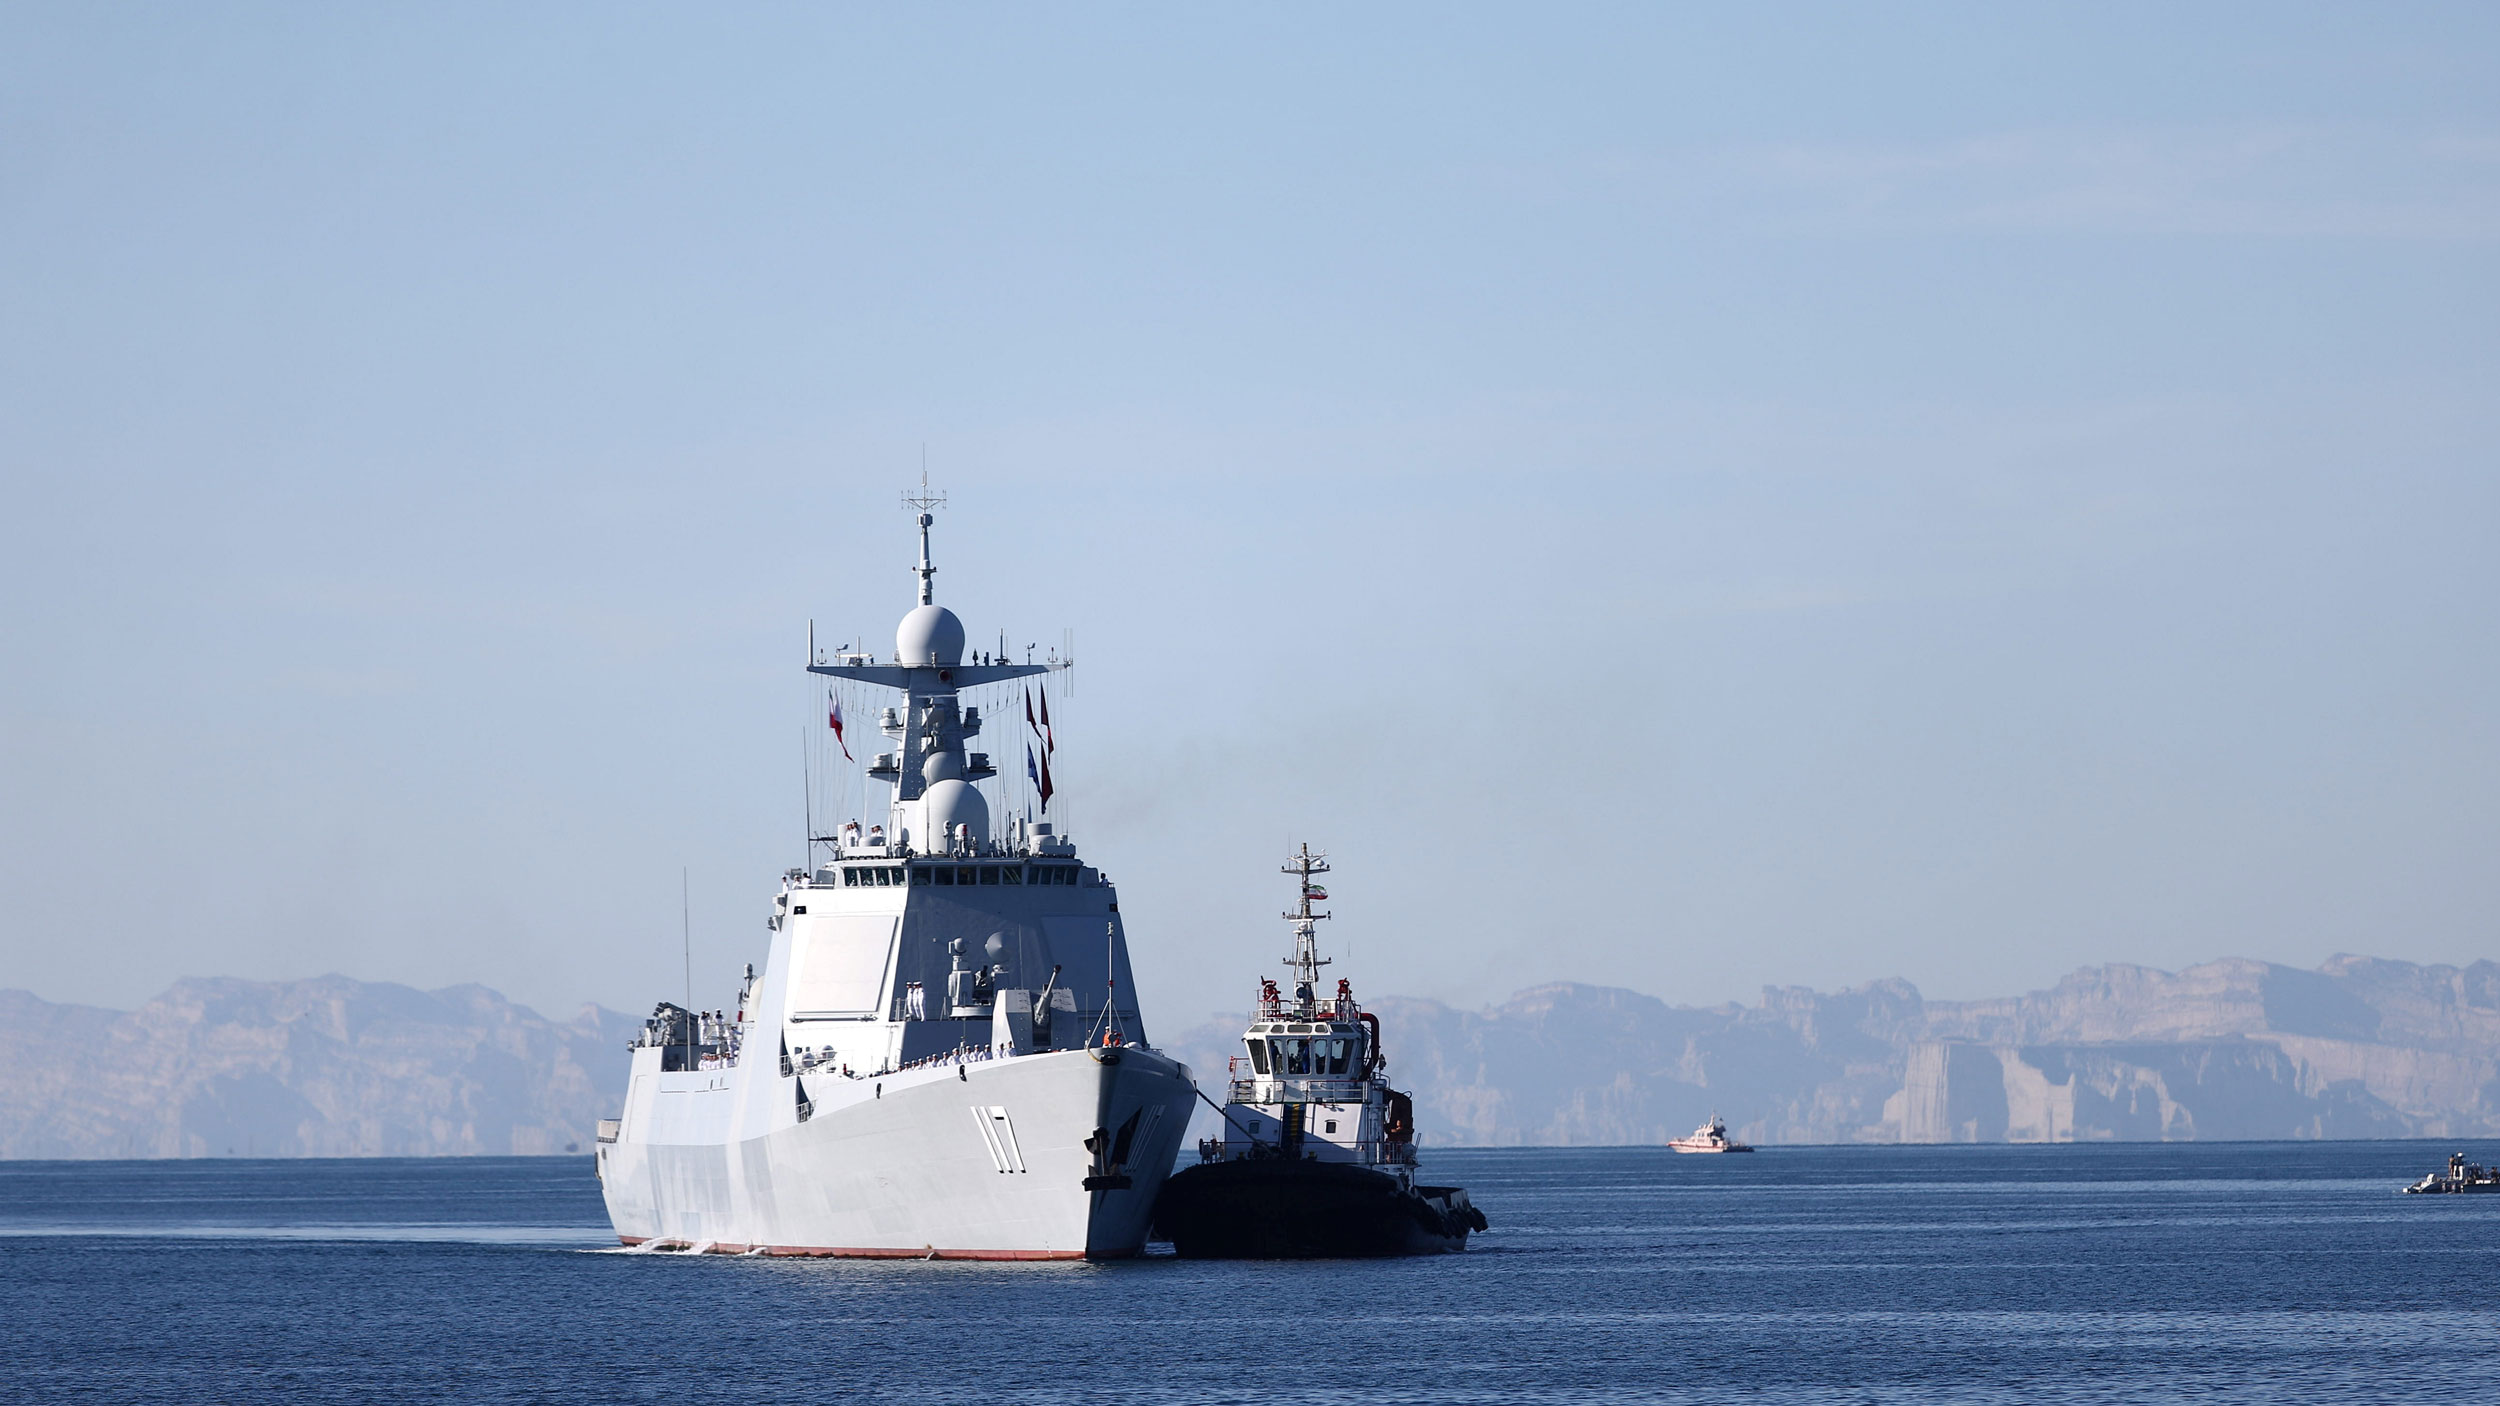 A warship sails in the Sea of Oman along side a smaller ship and a landmass shown in the distance.